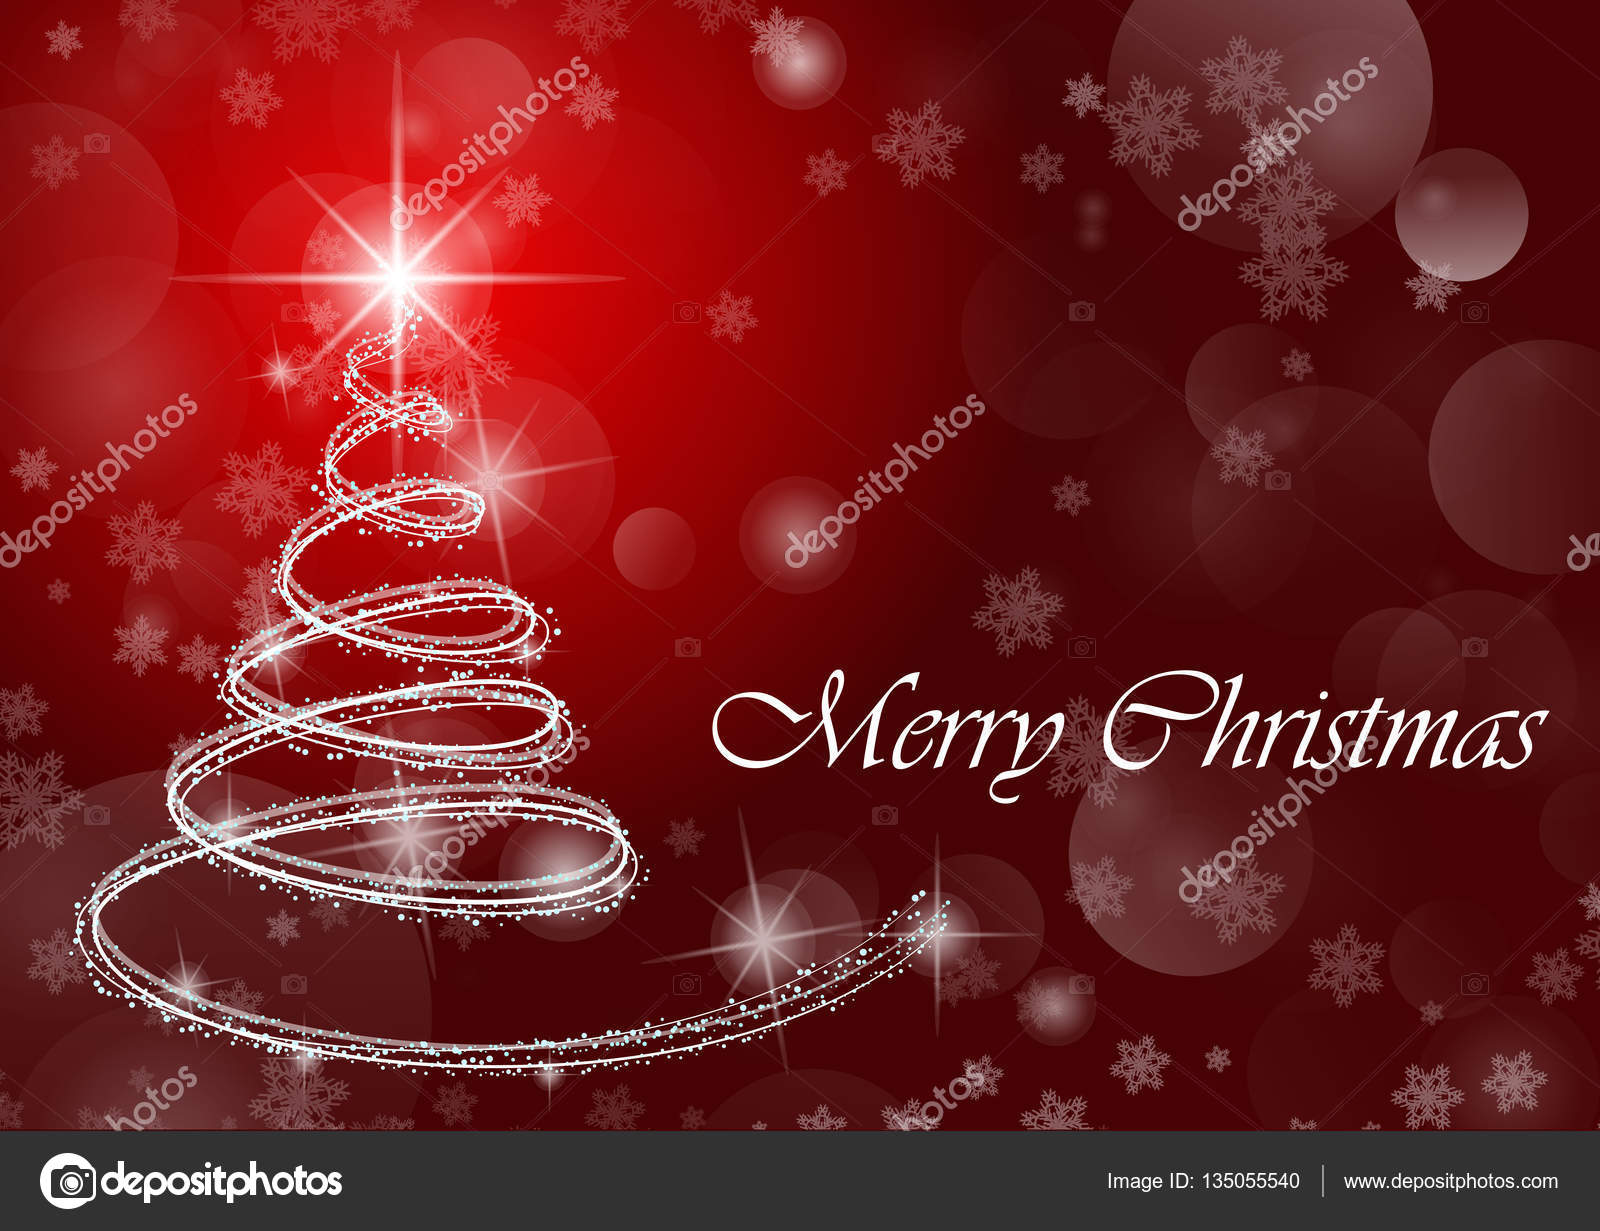 Merry Christmas Wallpaper.Merry Christmas Wallpaper With Tree Stock Photo